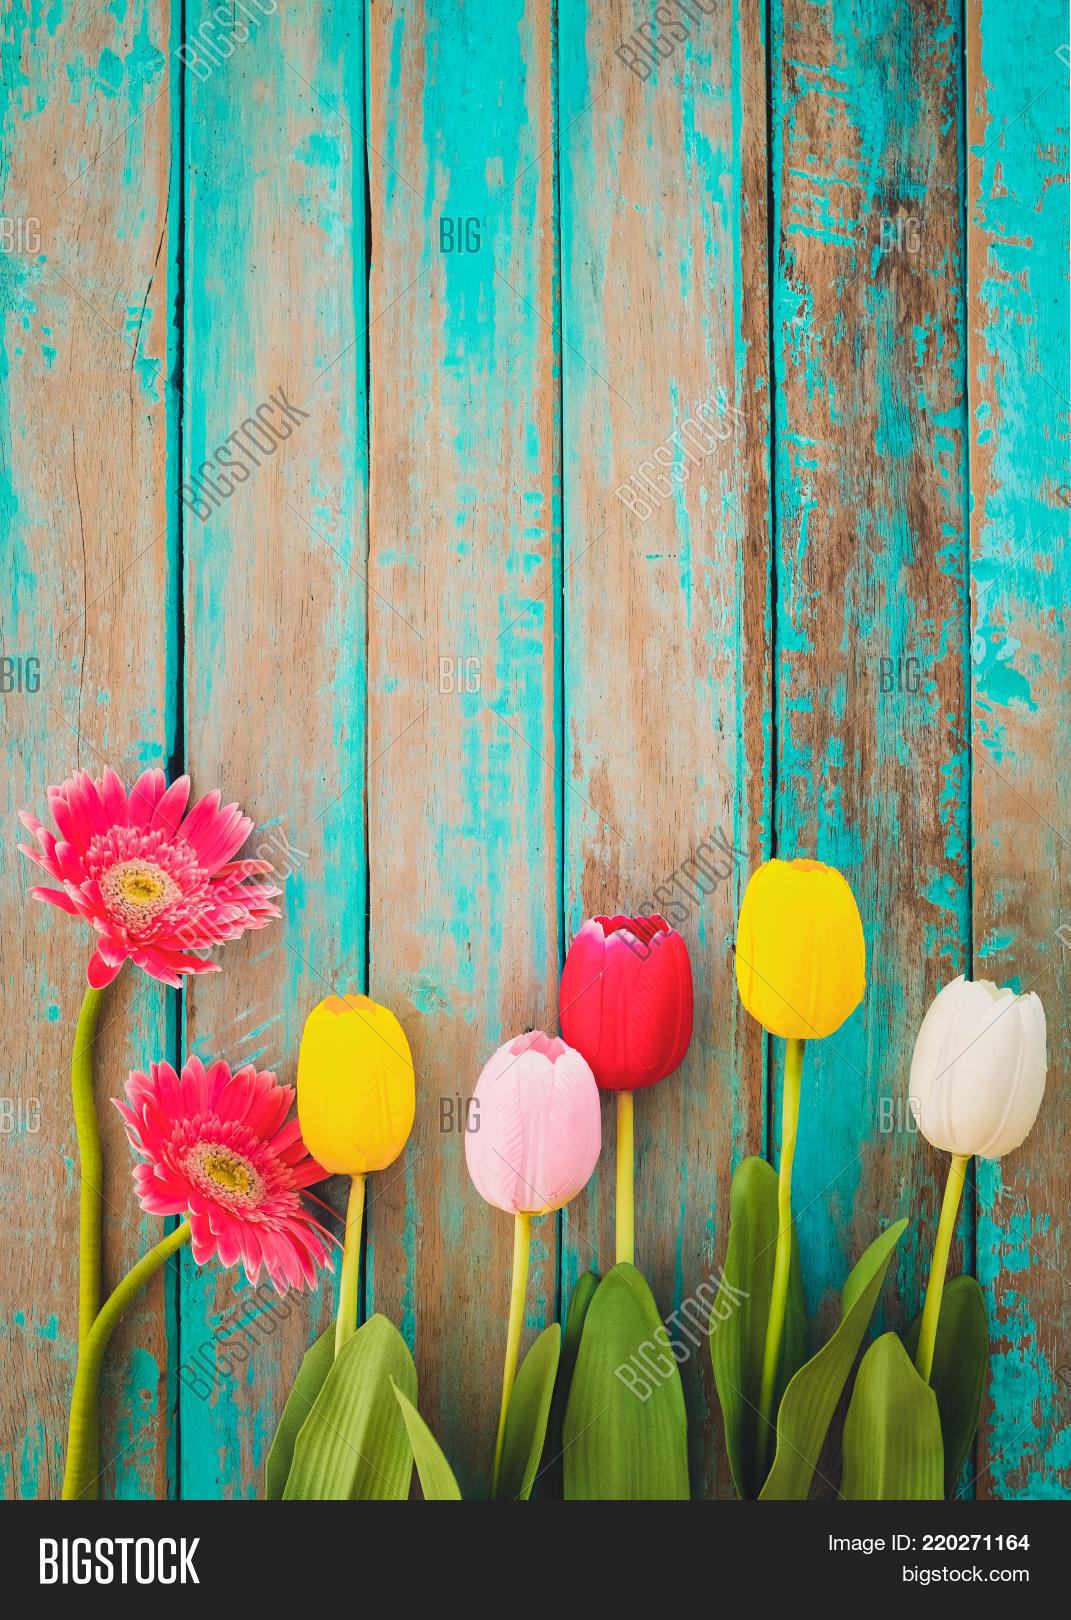 Colorful Flowers On Image Photo Free Trial Bigstock